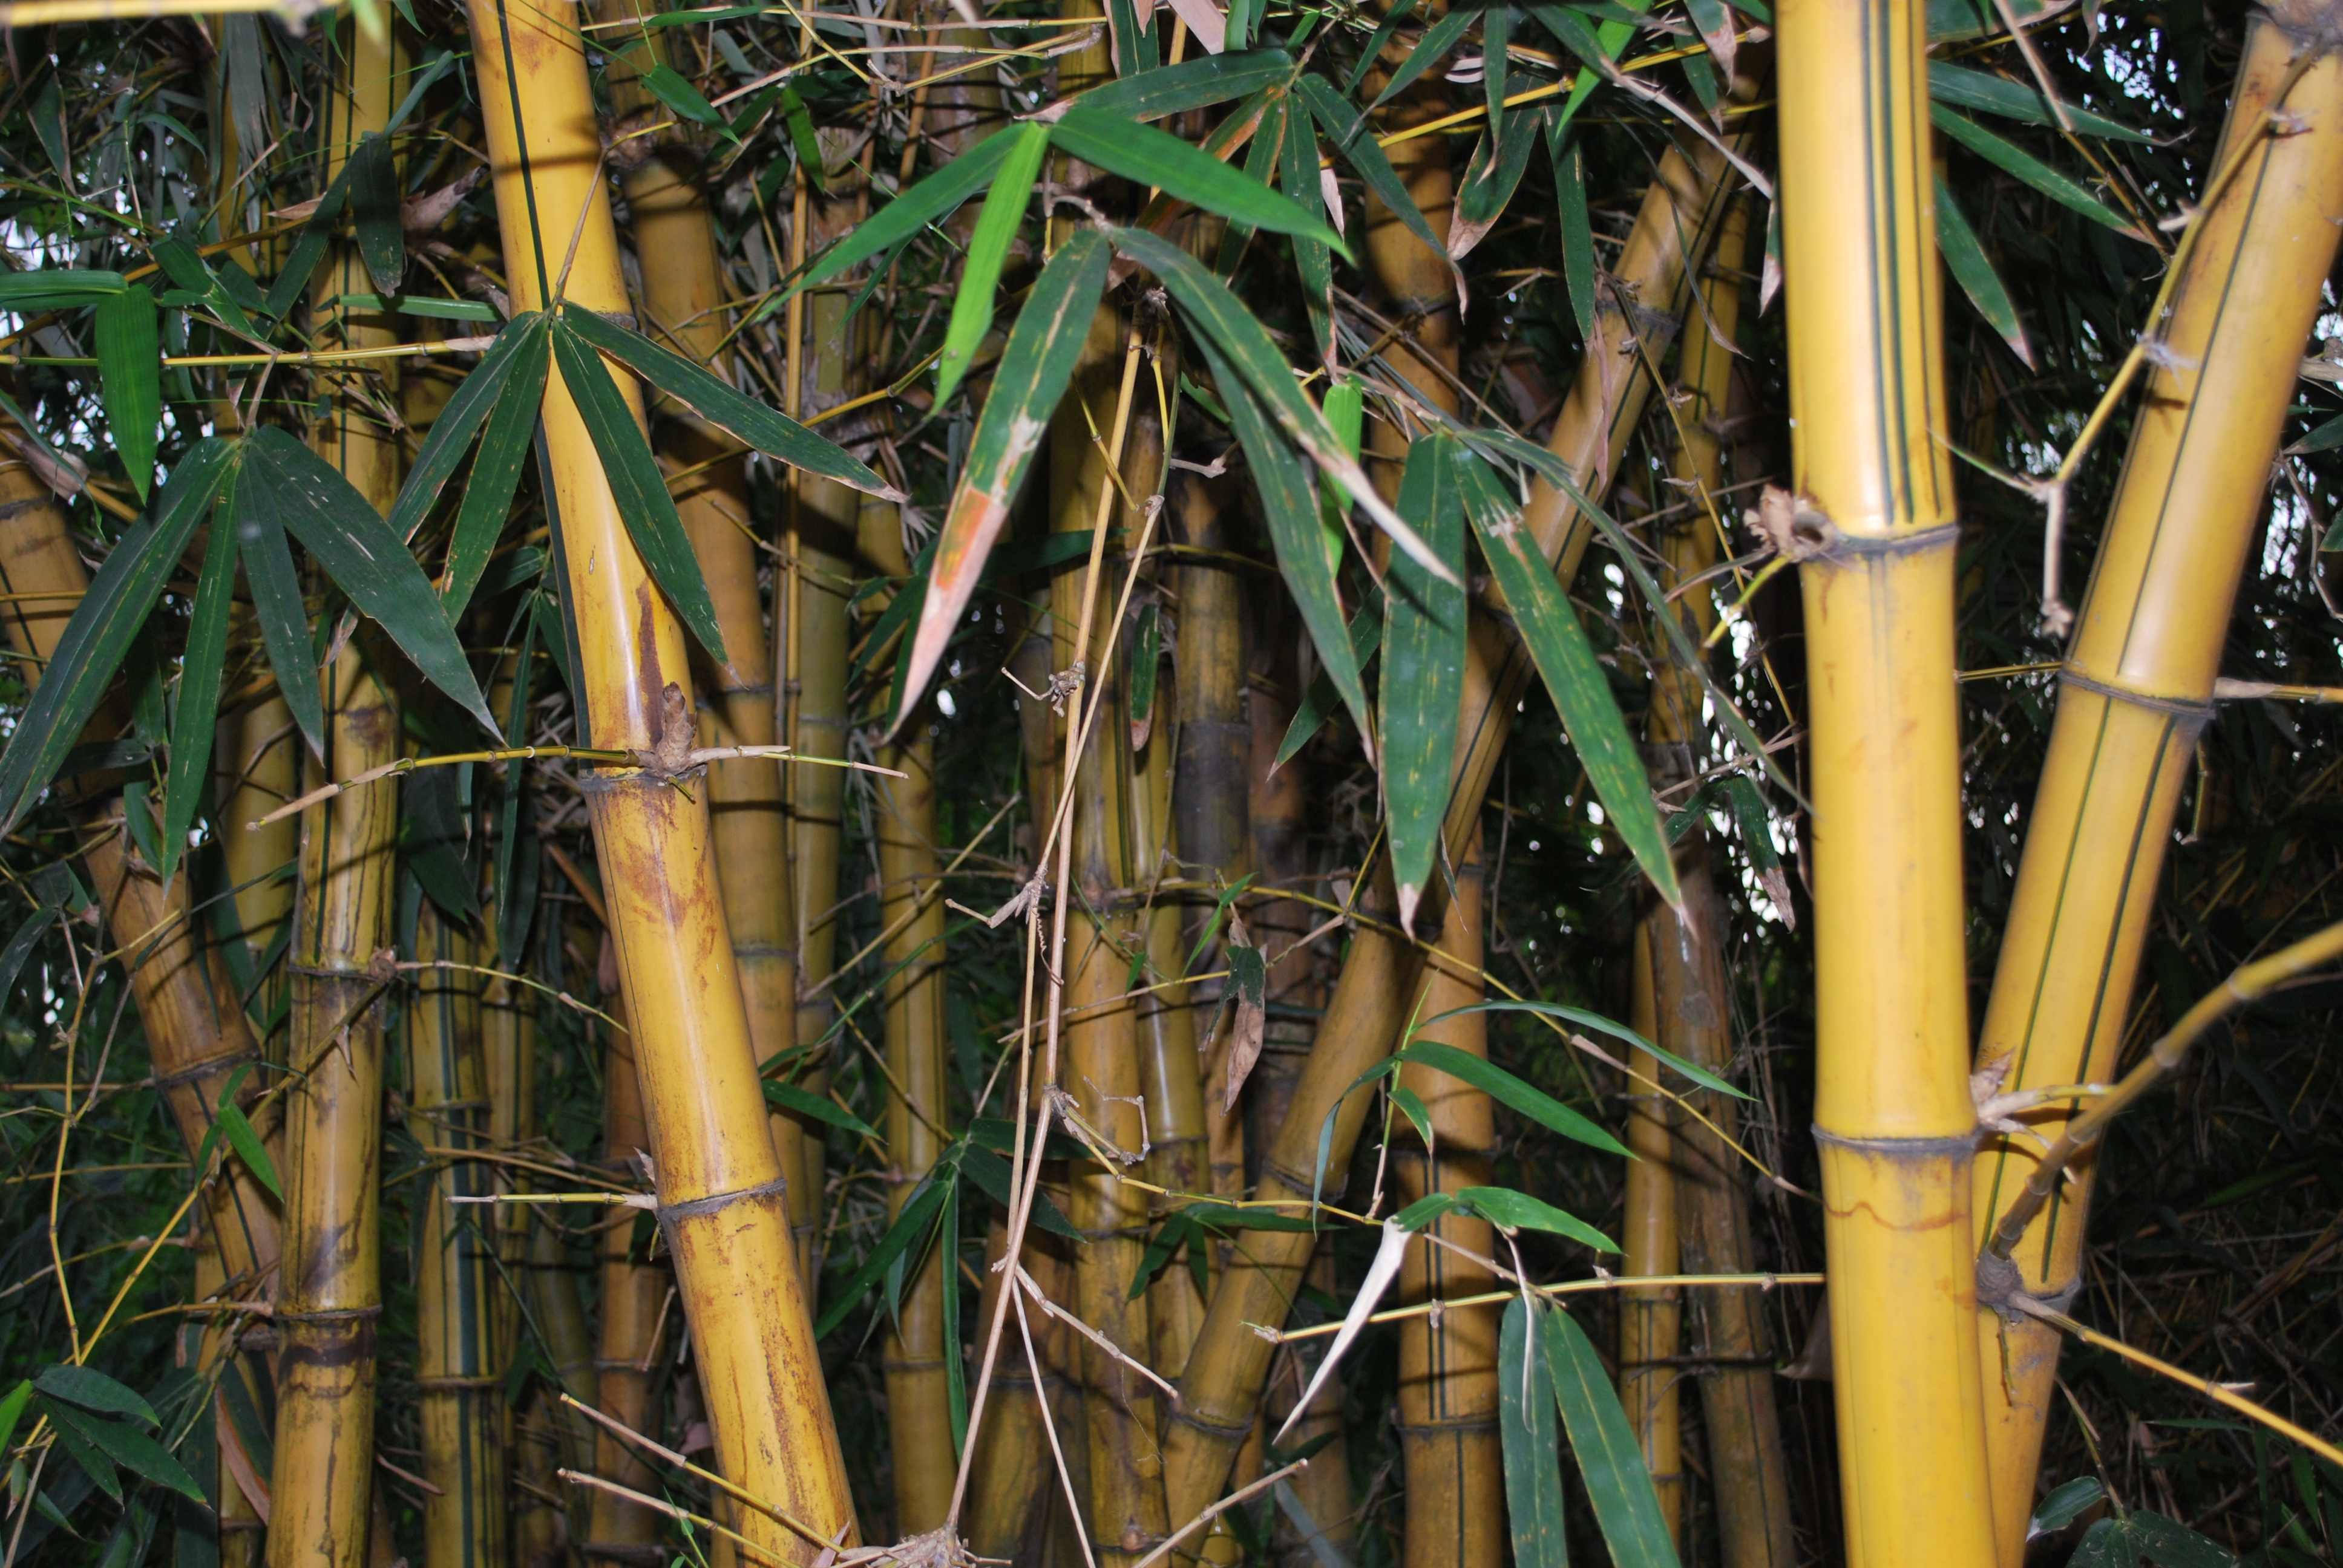 Asian Plants For Sale Chinese Bamboo Cainta Plant Nursery